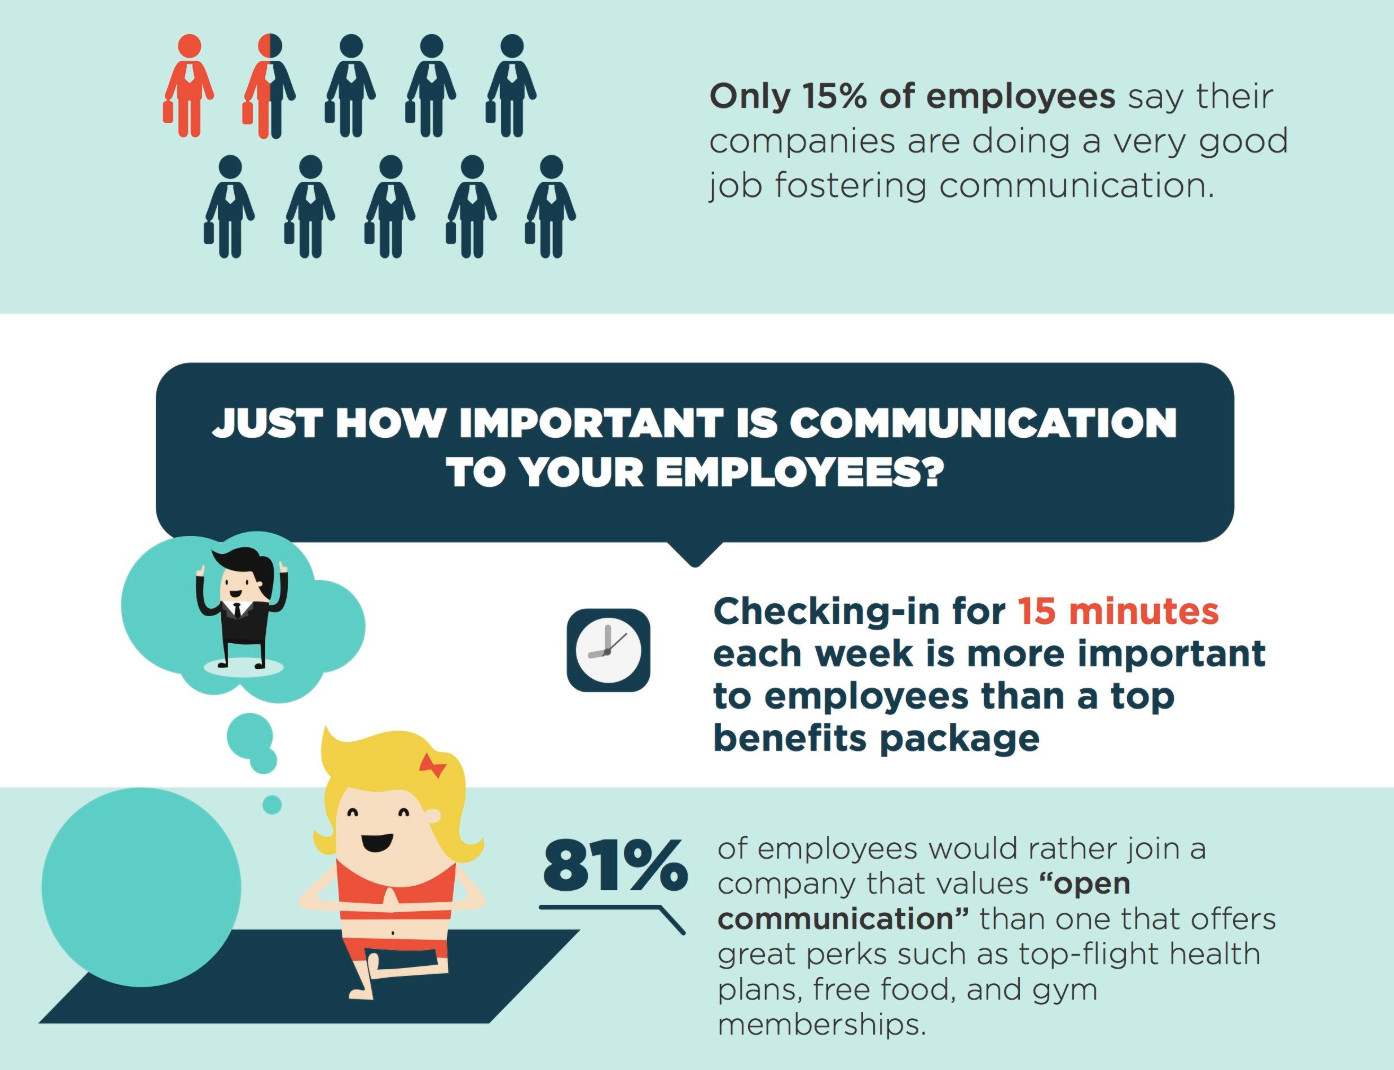 how important is communication to your employees